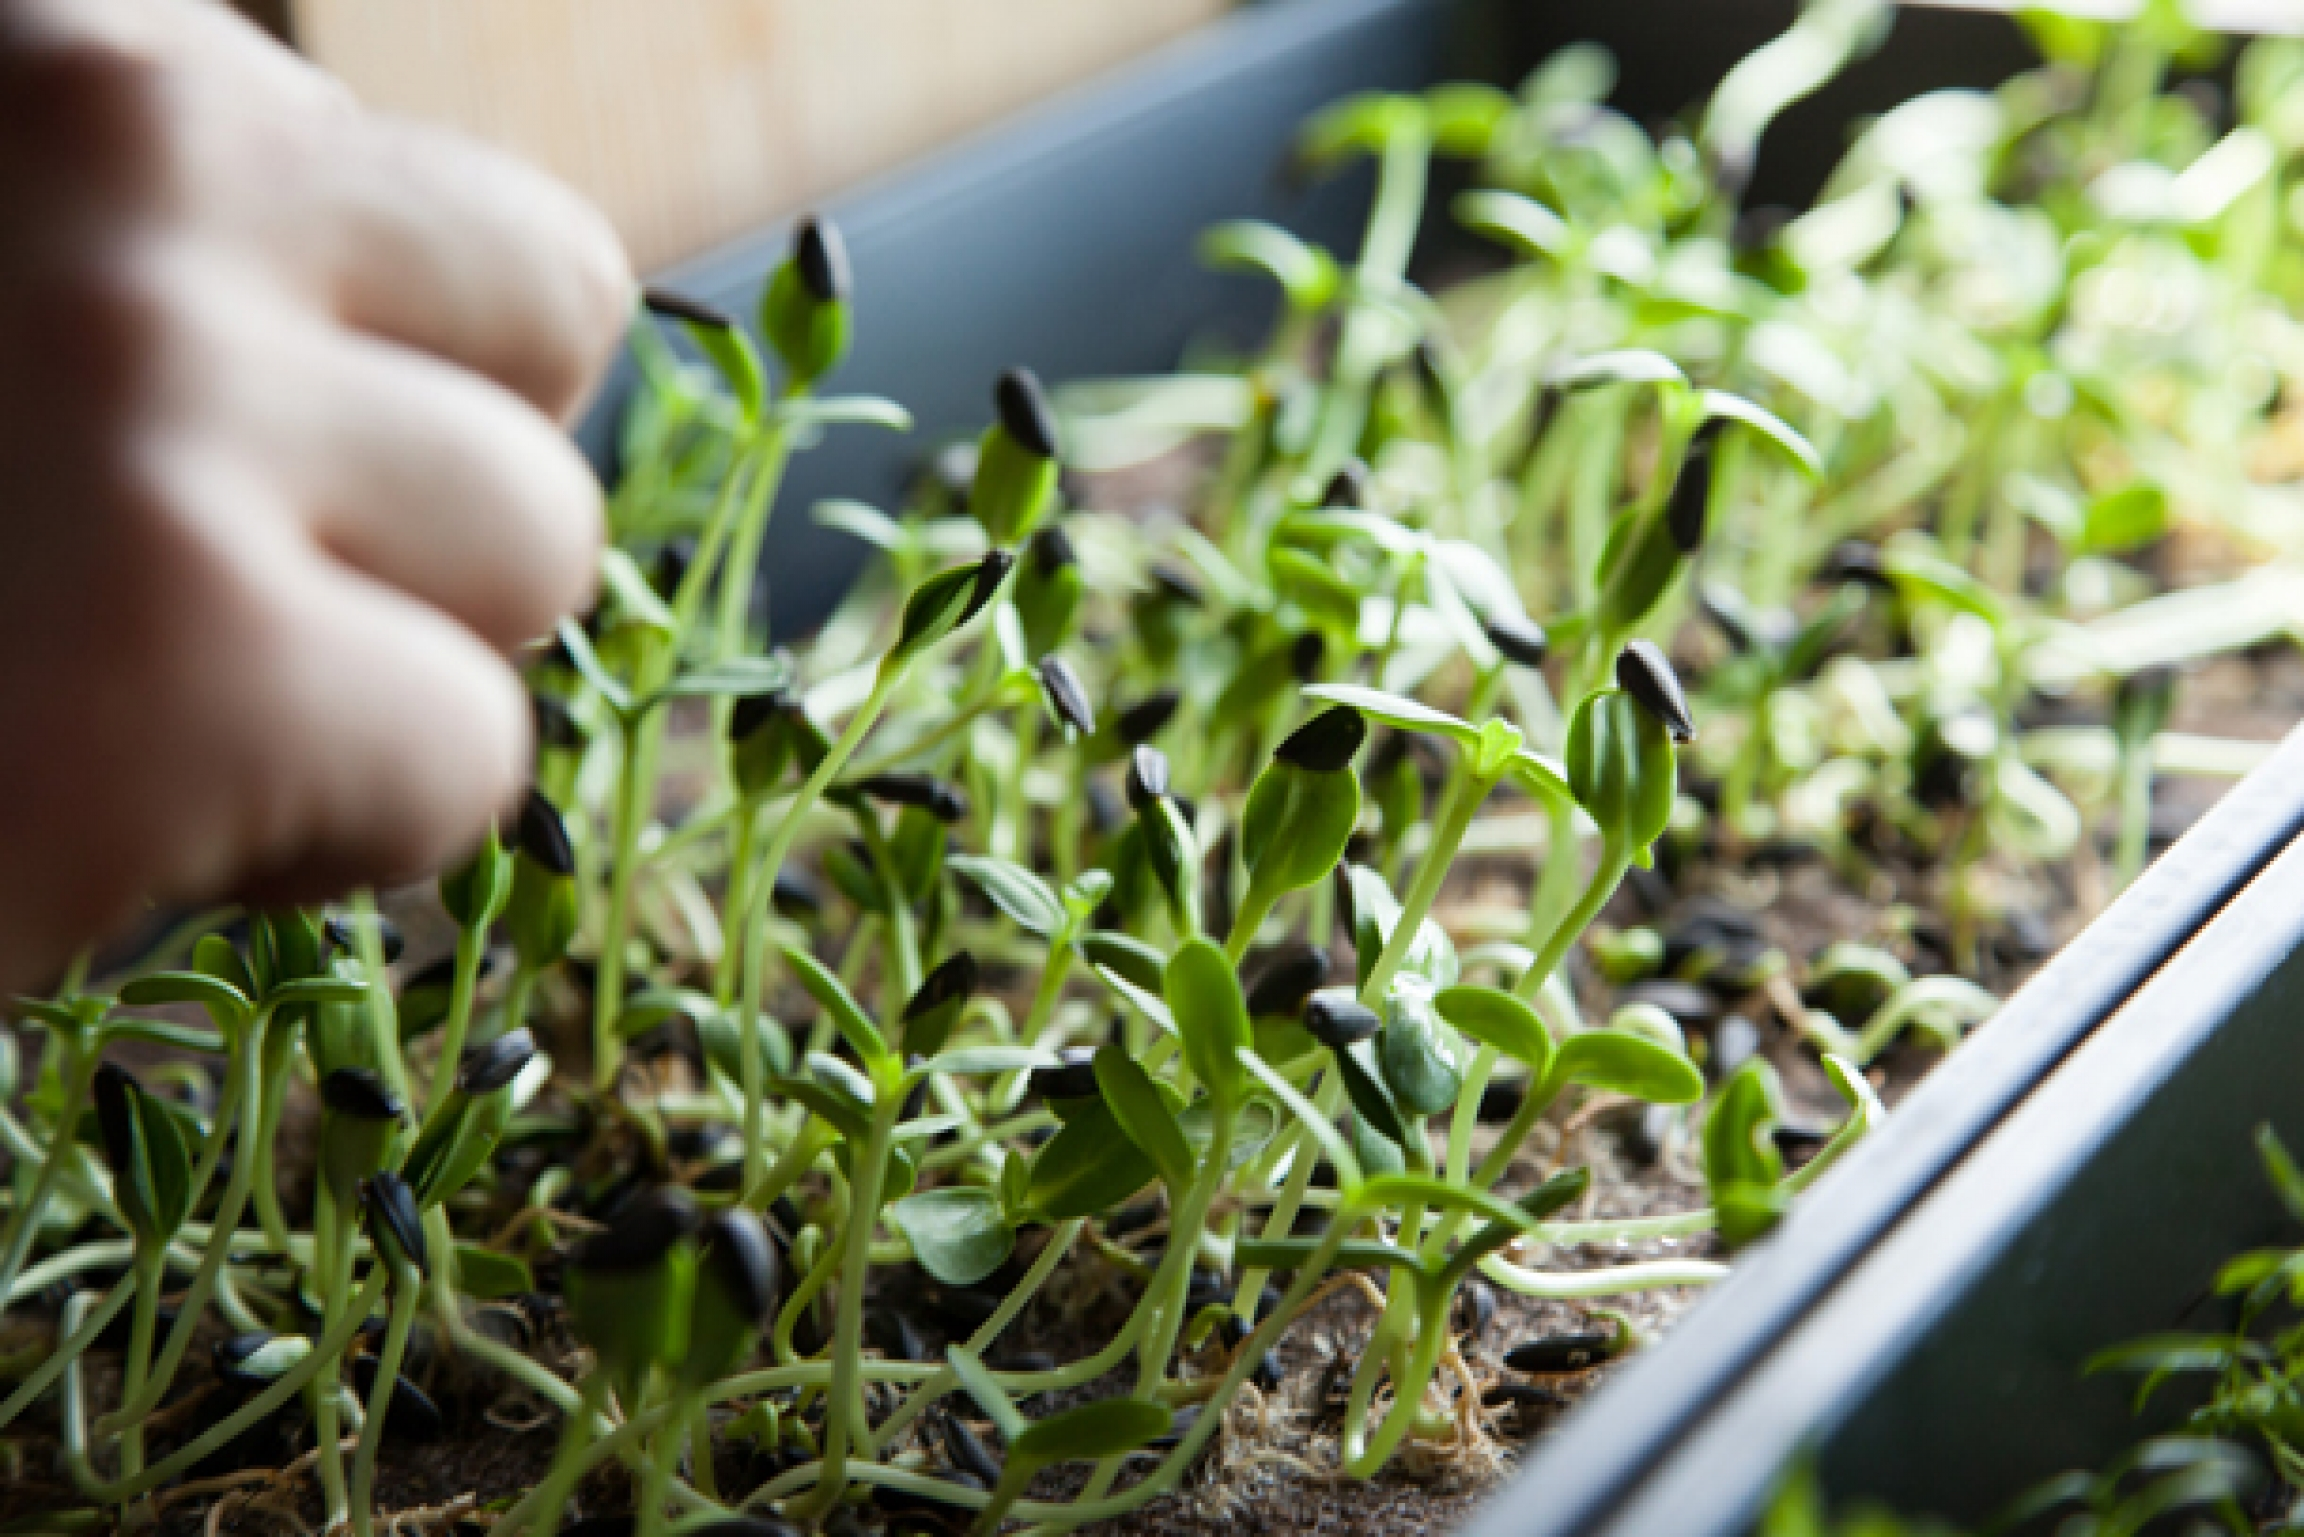 Microgreens are a simple way of incorporating fresh ingredients for cooking that you can grow in the comfort of your home. Some of the most popular microgreens include pea shoots, radish sprouts, sunflower shoots and wheatgrass.